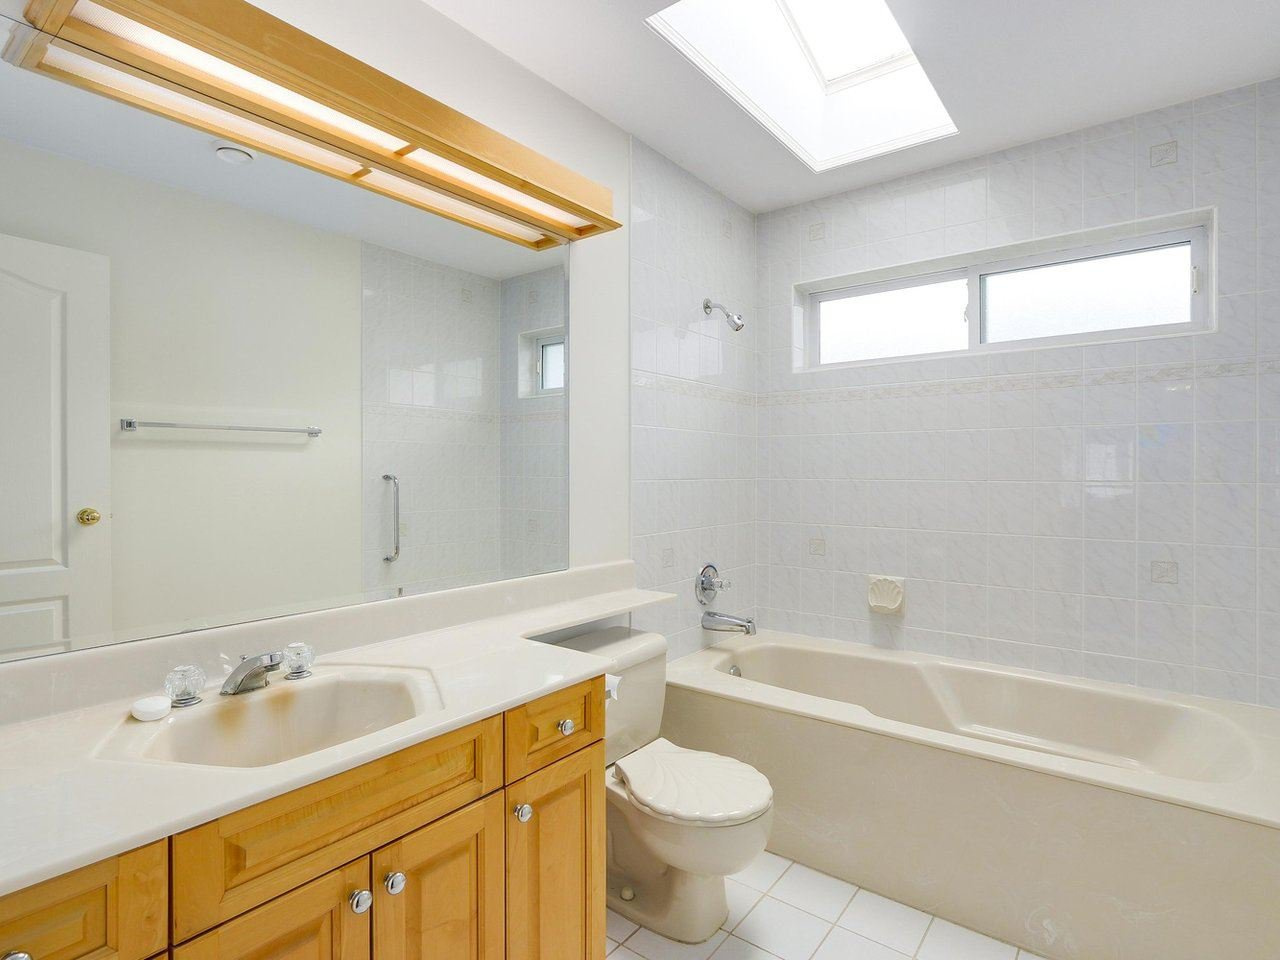 Photo 16: Photos: 1325 132B Street in Surrey: Crescent Bch Ocean Pk. House for sale (South Surrey White Rock)  : MLS®# R2185643